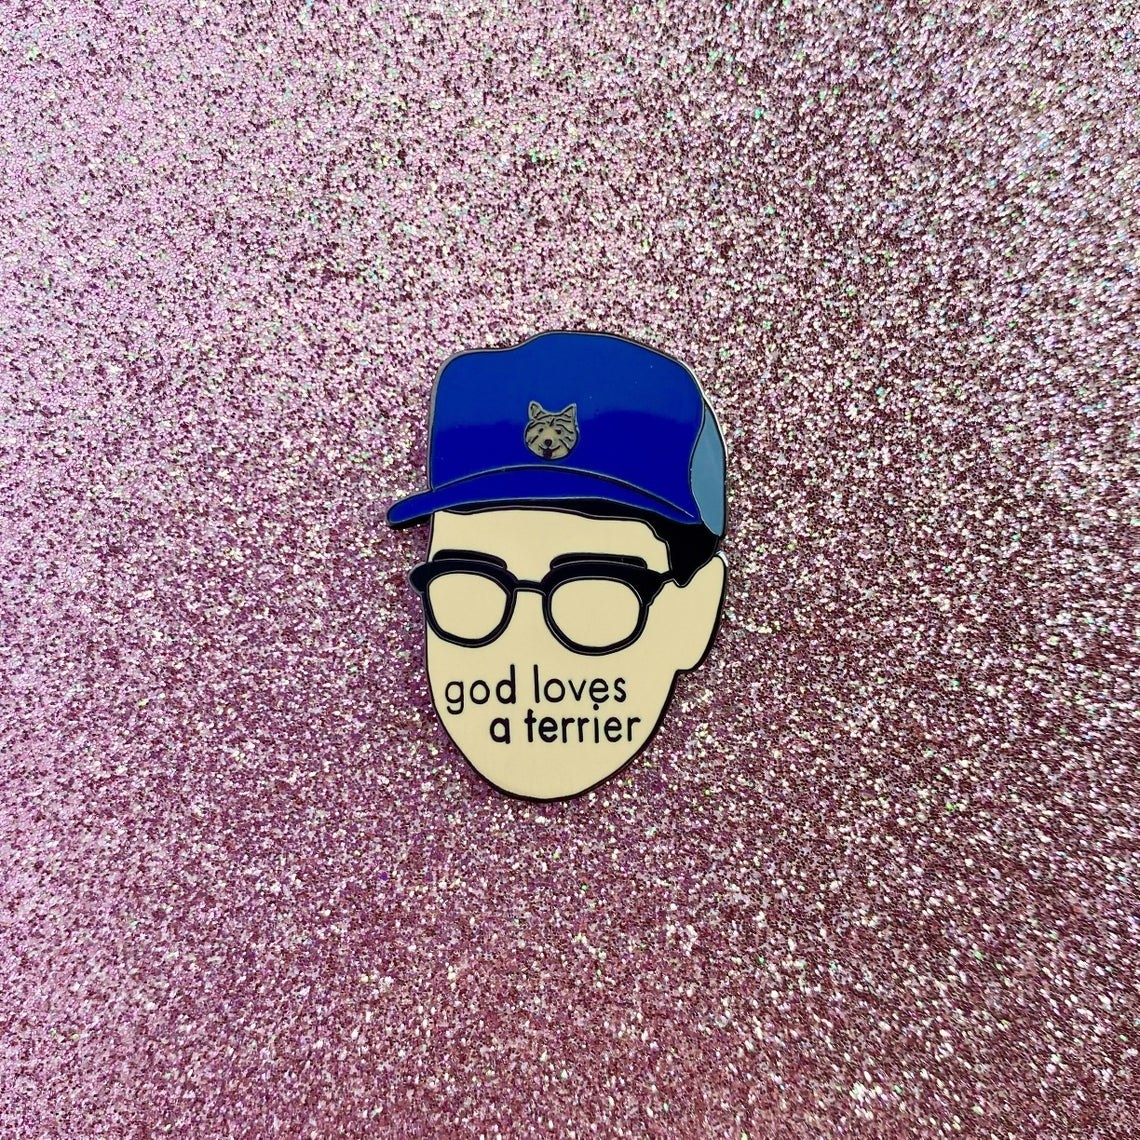 minimalist eugene levy wearinh terrier hat that says god loves a terrier on it